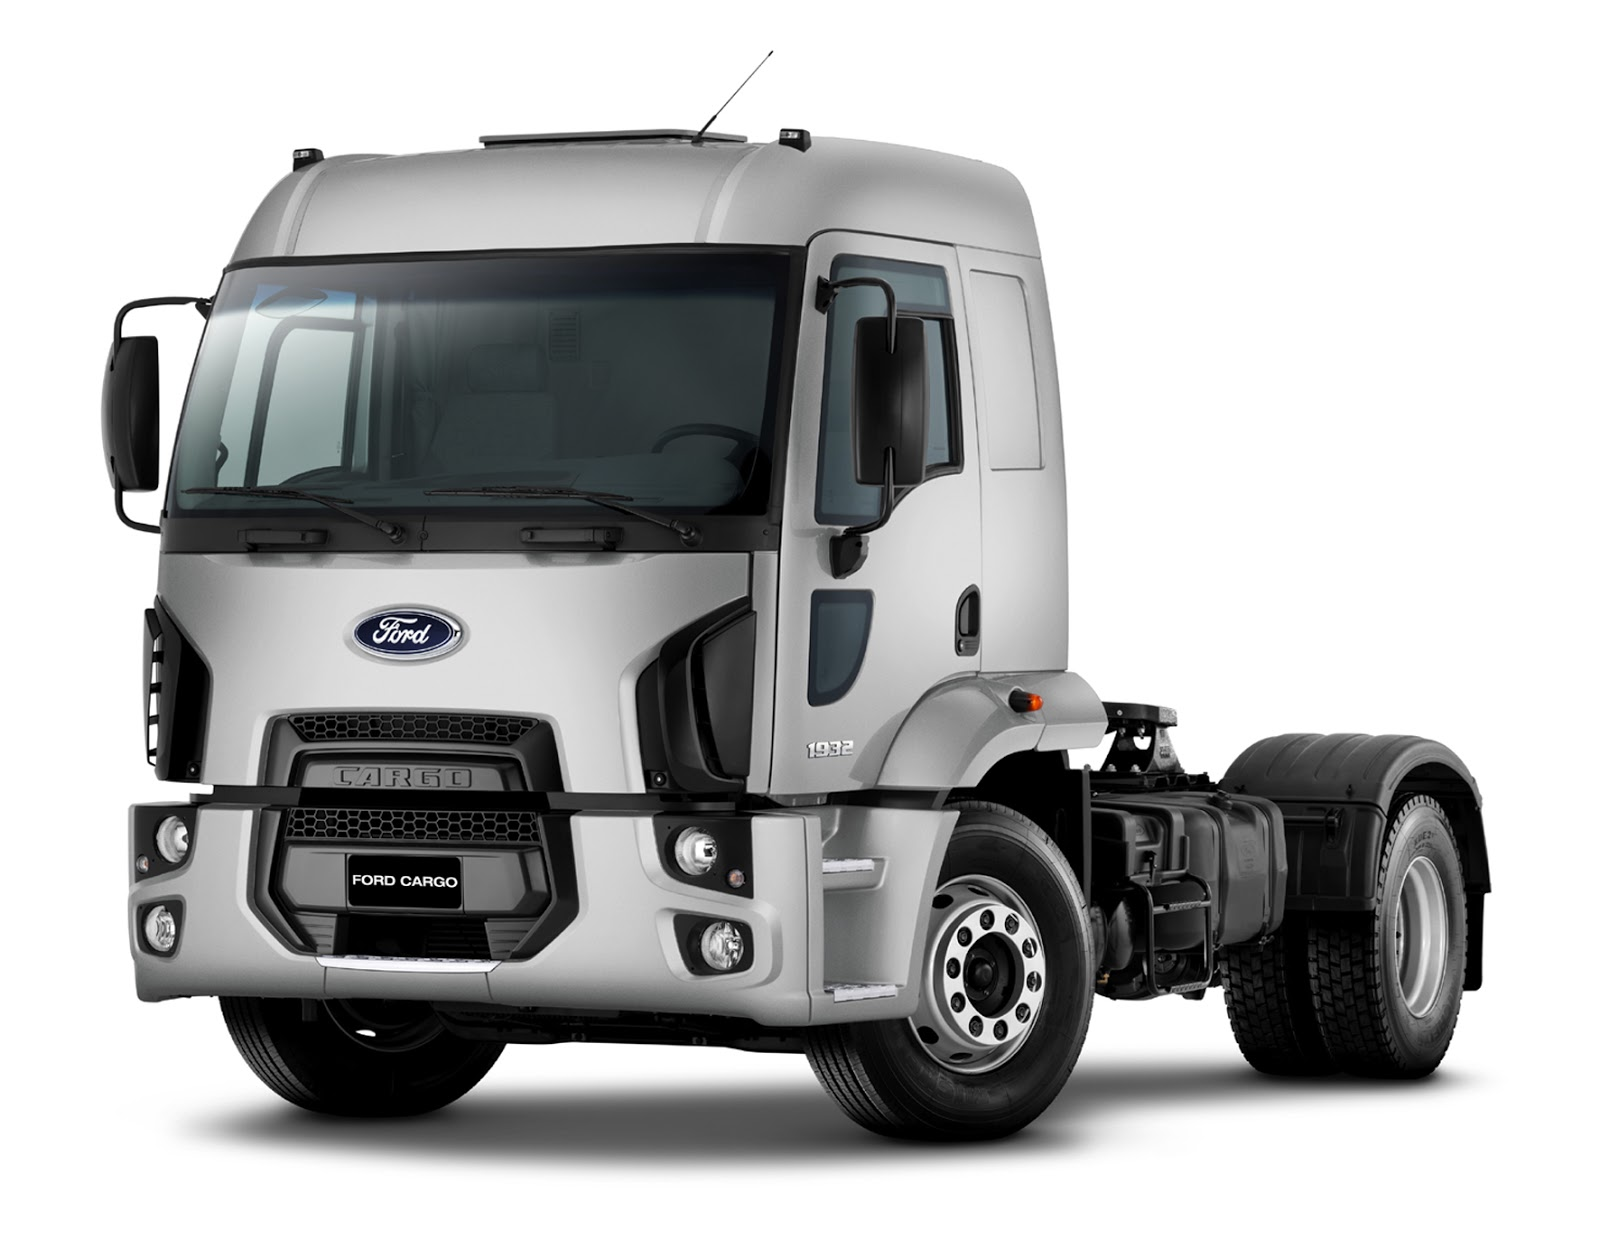 Ford cargo 2013 photo - 4